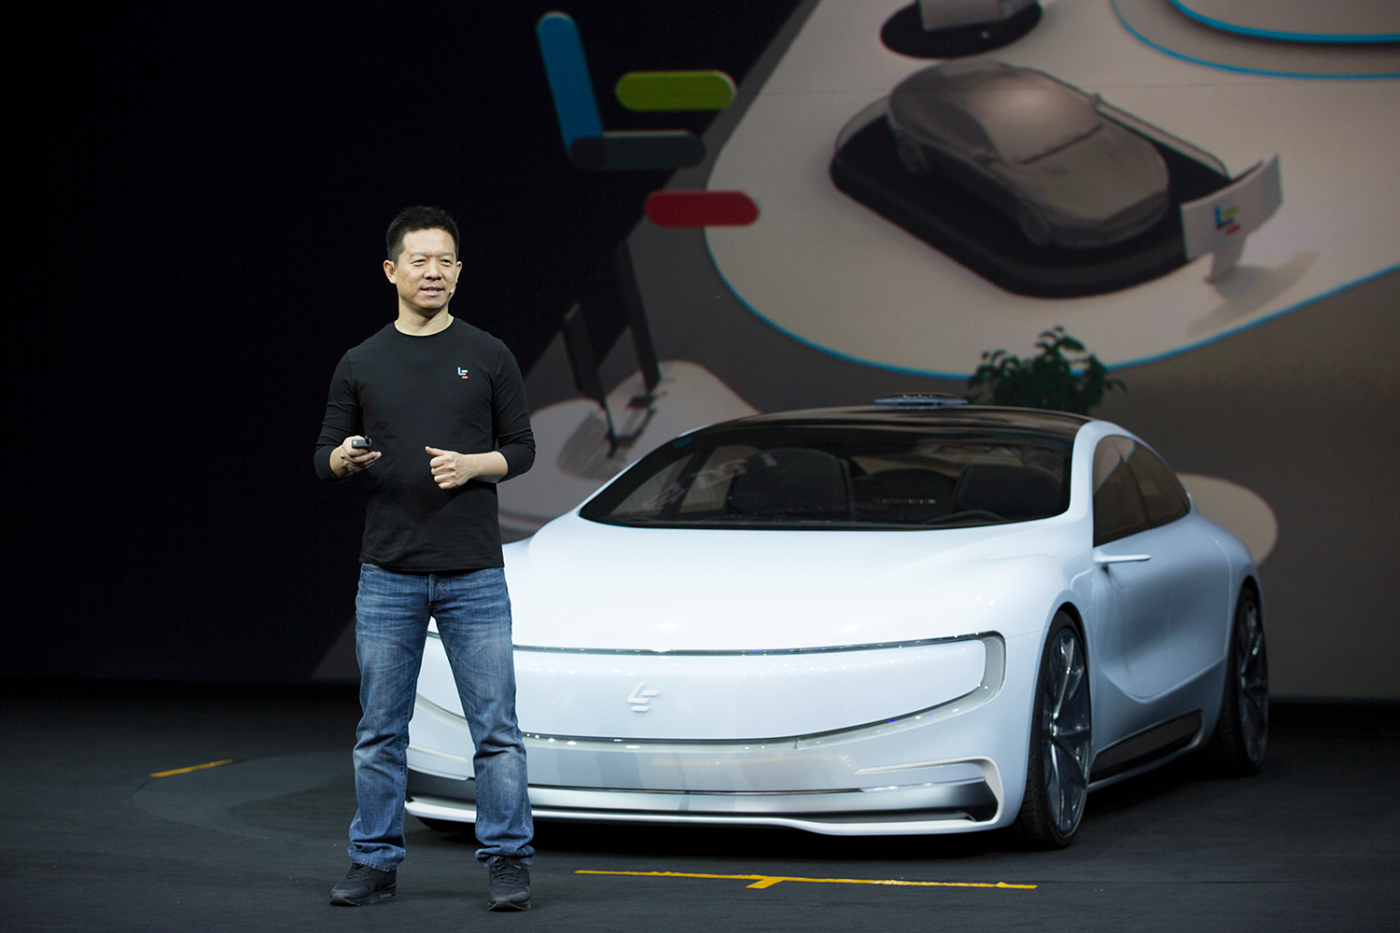 Chinese Billionaire Behind Faraday Future Secures 600 Million For